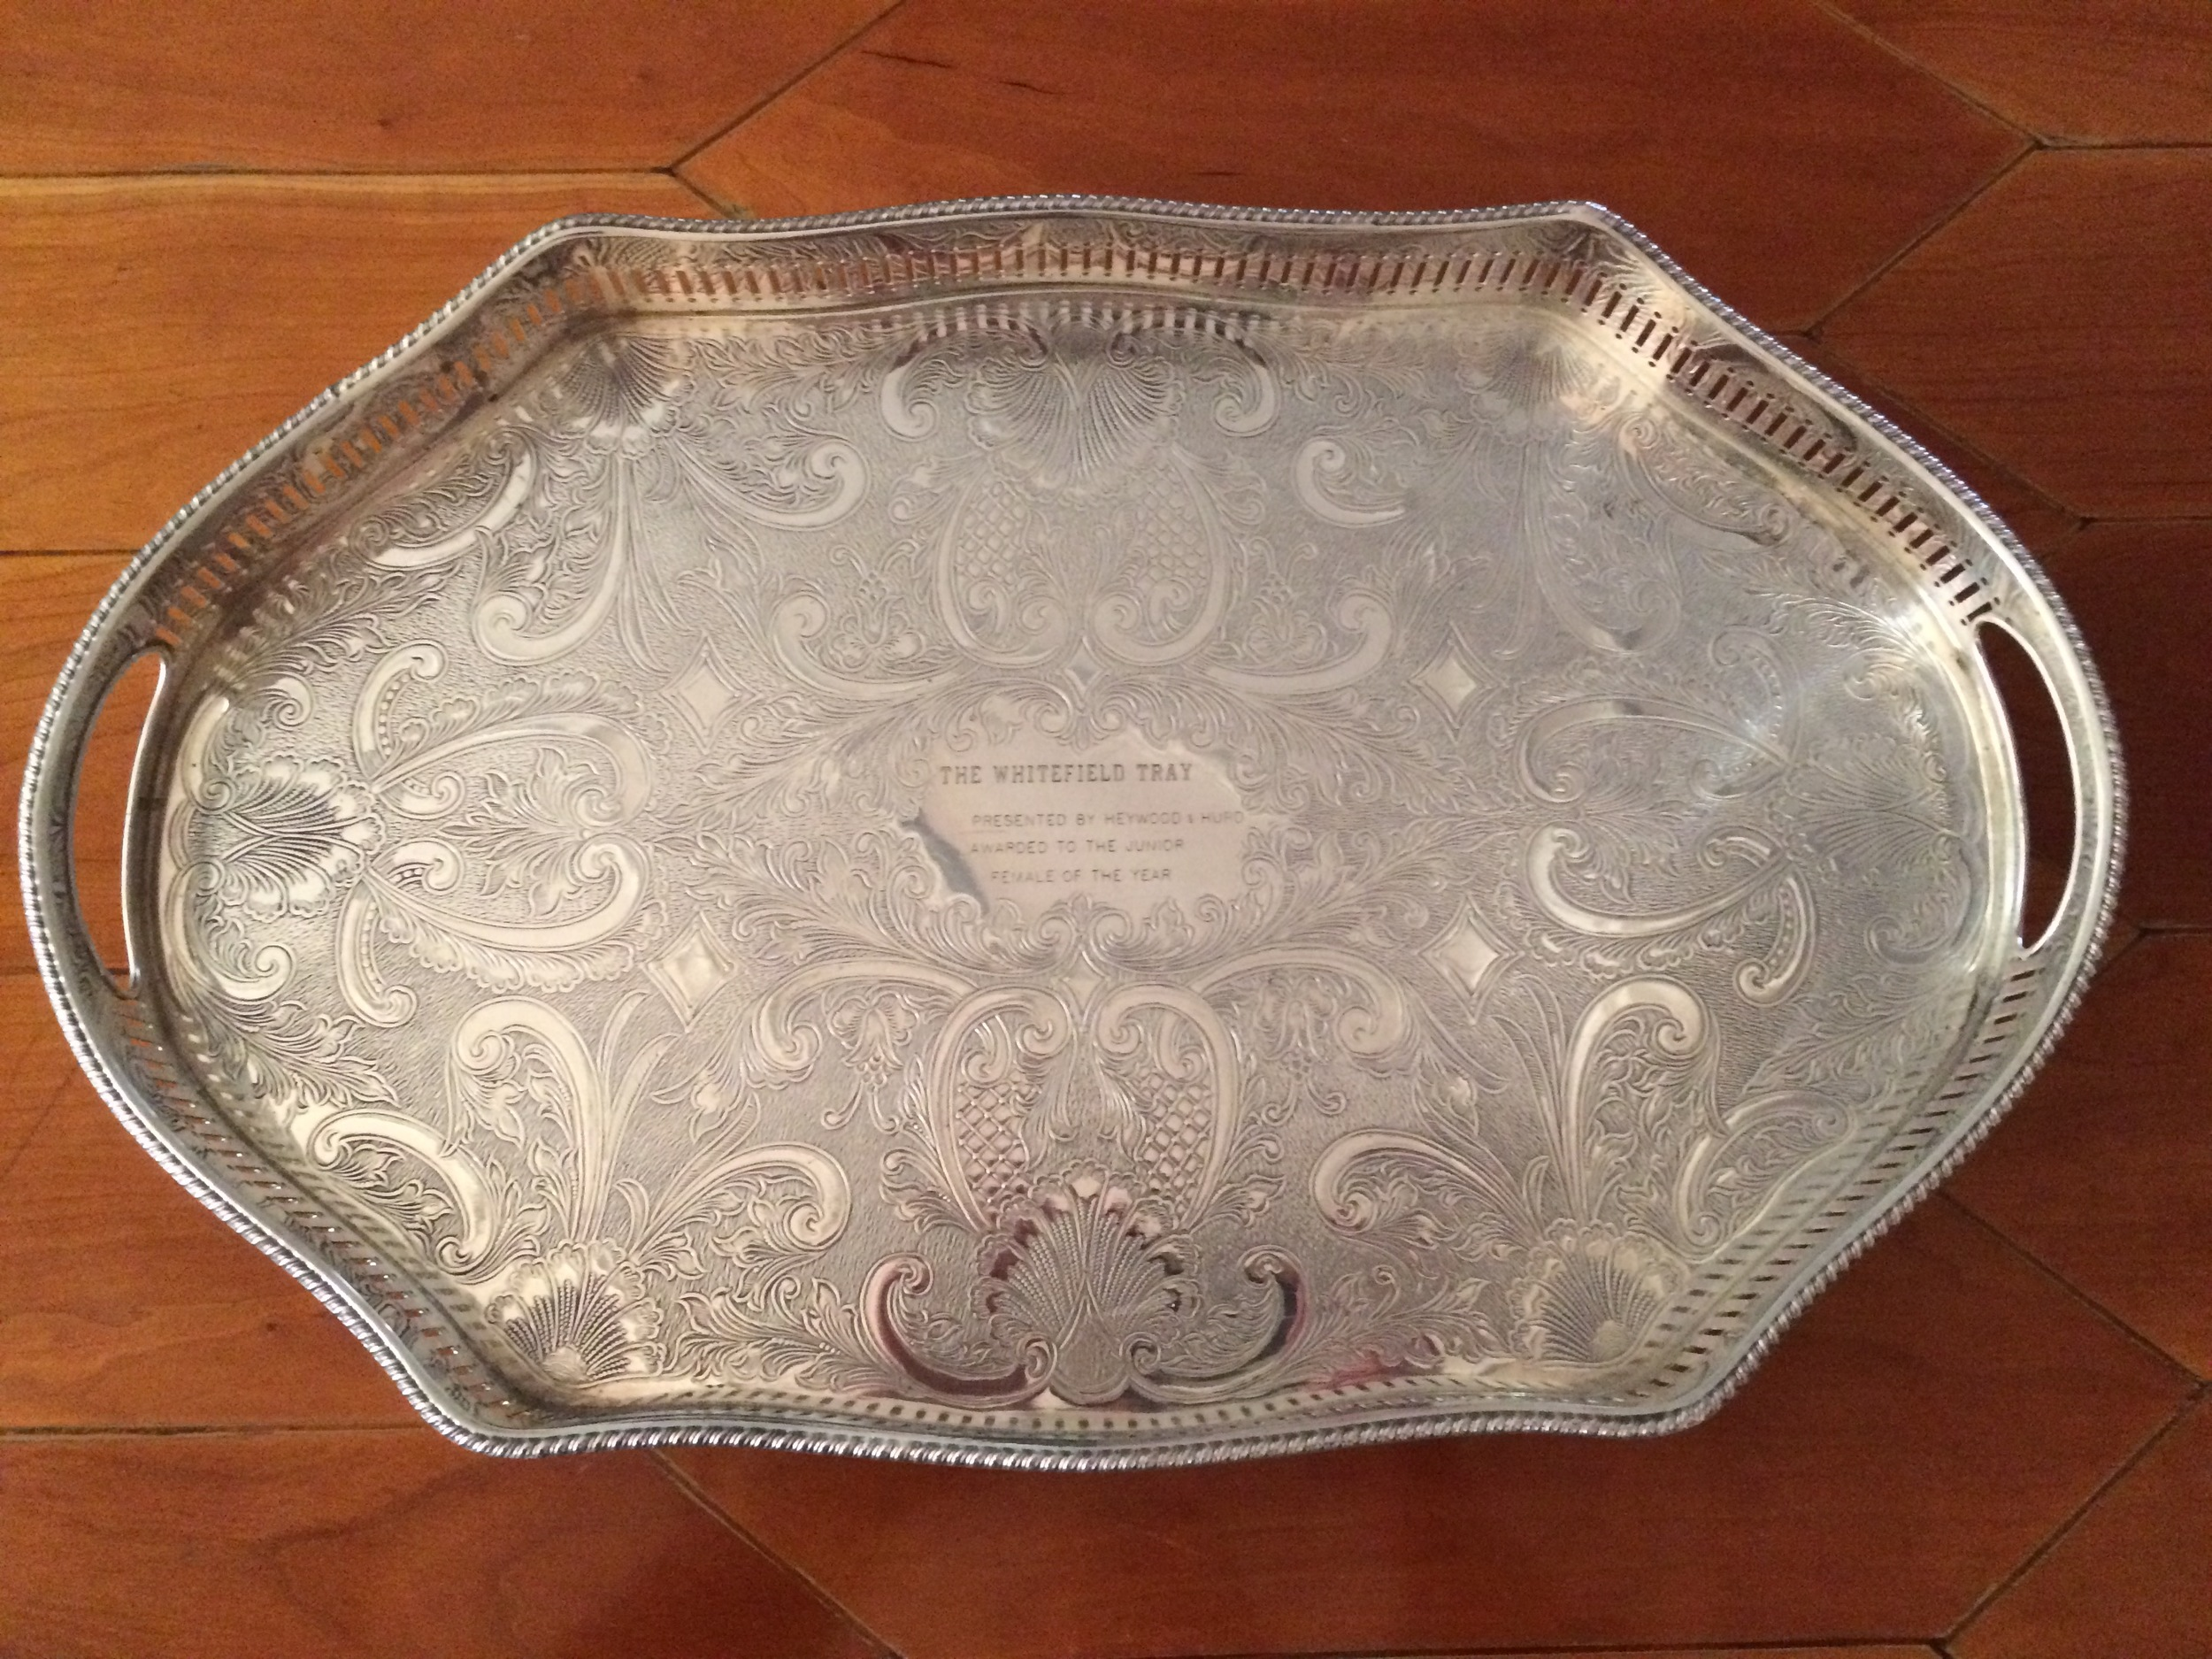 Colleton Marion 27th won The Whitefield Tray in 2015